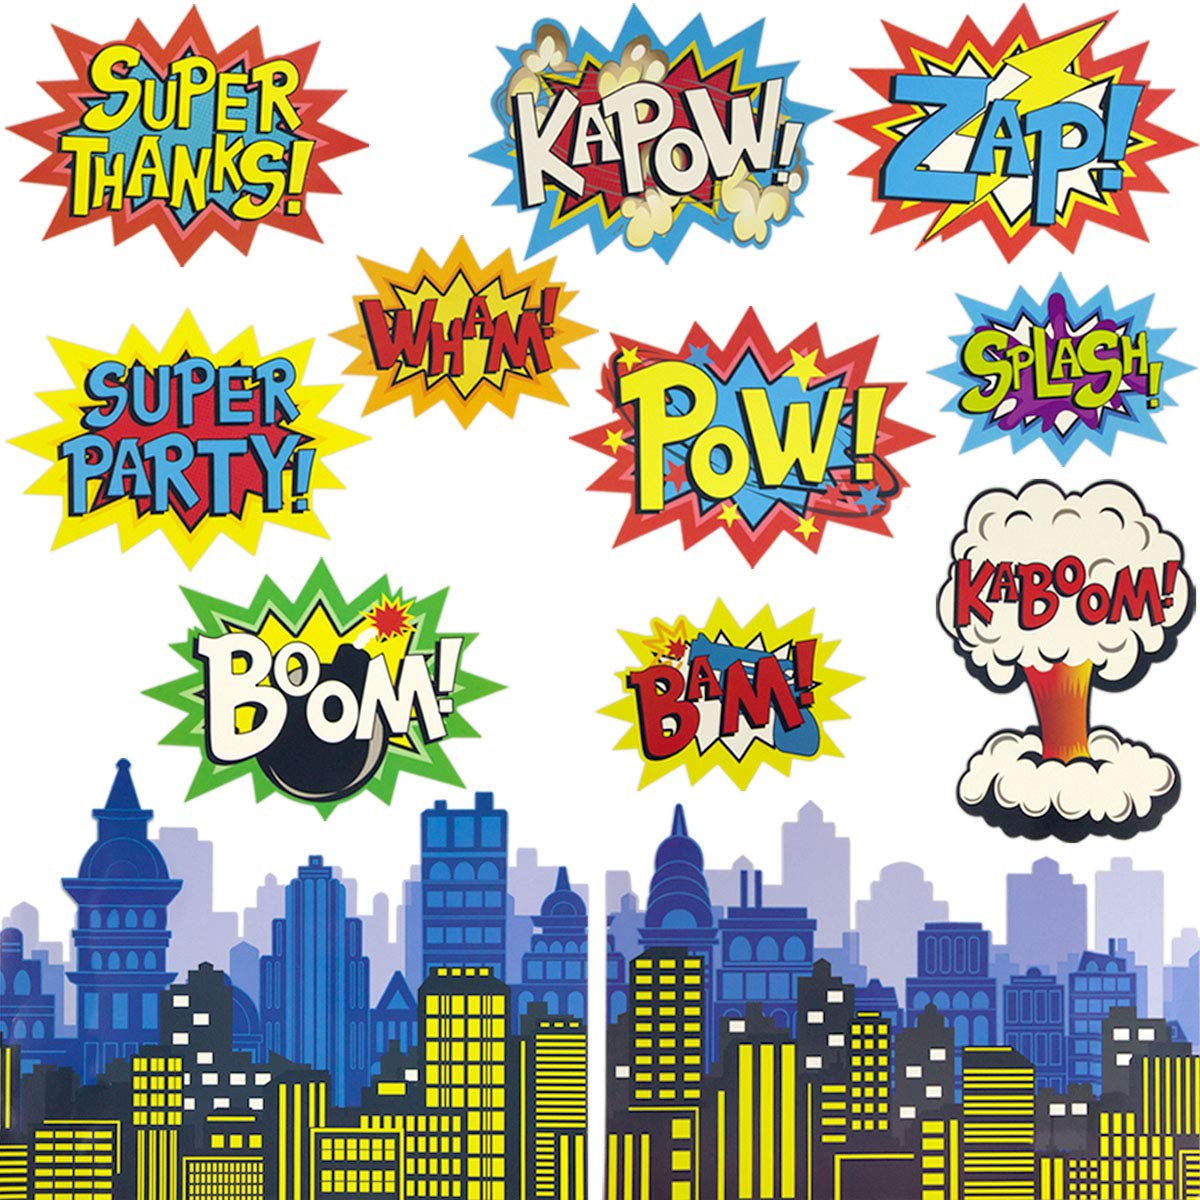 Large Superhero Action Signs Cutouts 12PCS Words and Cityscape Cut-Outs for Party Decoration